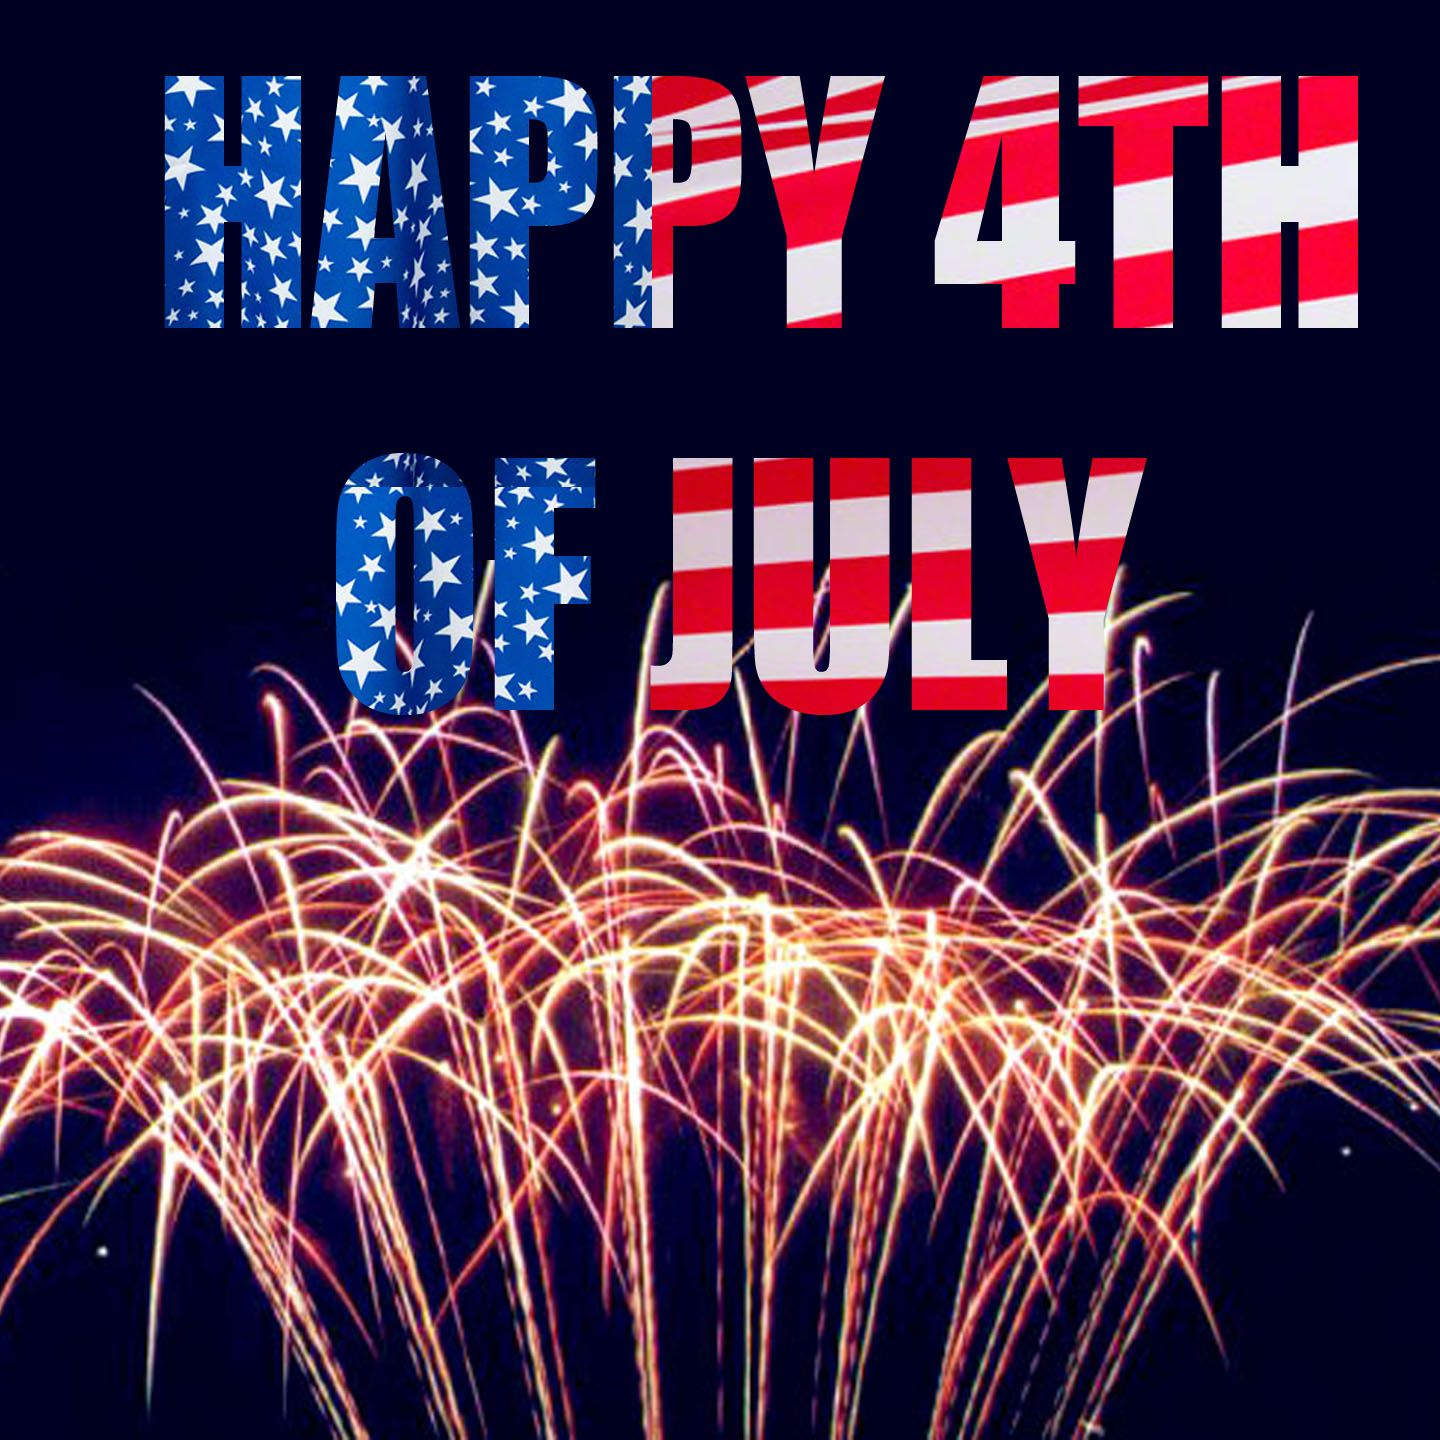 Happy 4th Of July Images 2018 Fourth Of July Pictures Photos Wallpaper